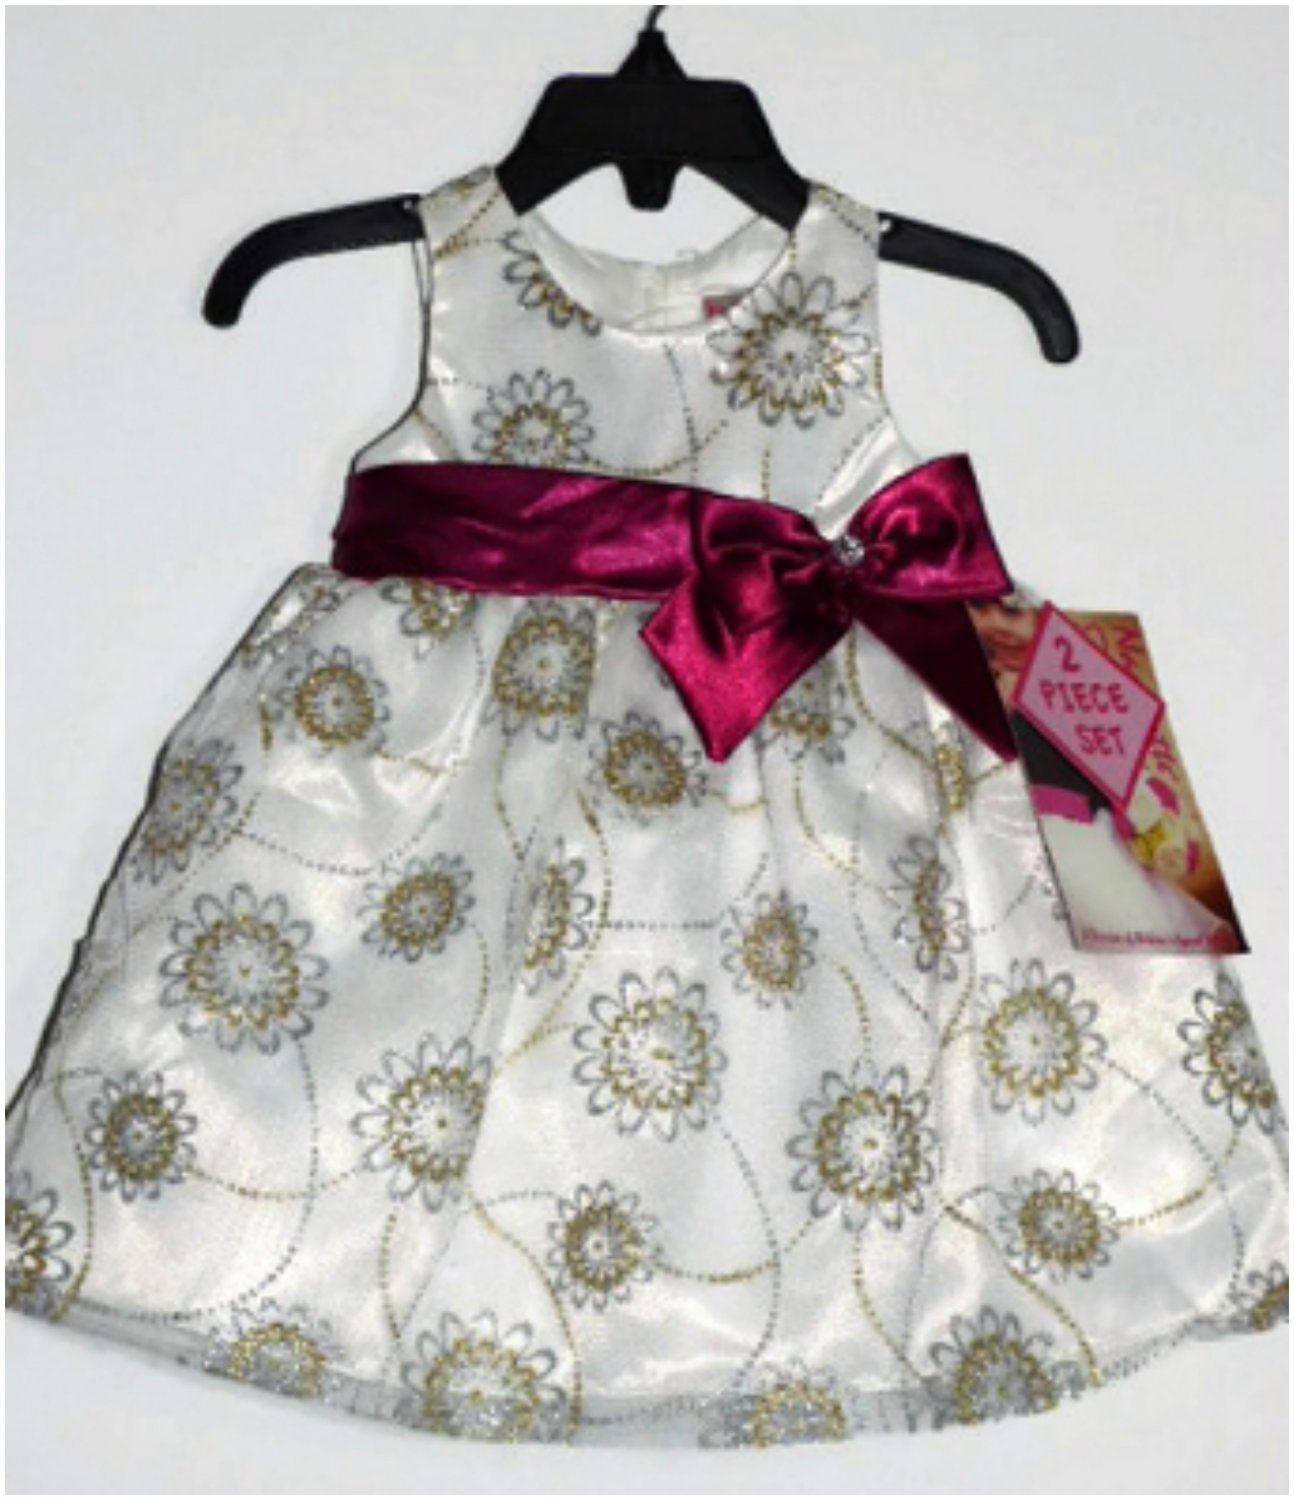 NEW Nannette Cream/Silver/Gold Dress with Purple Bow, 12 Months